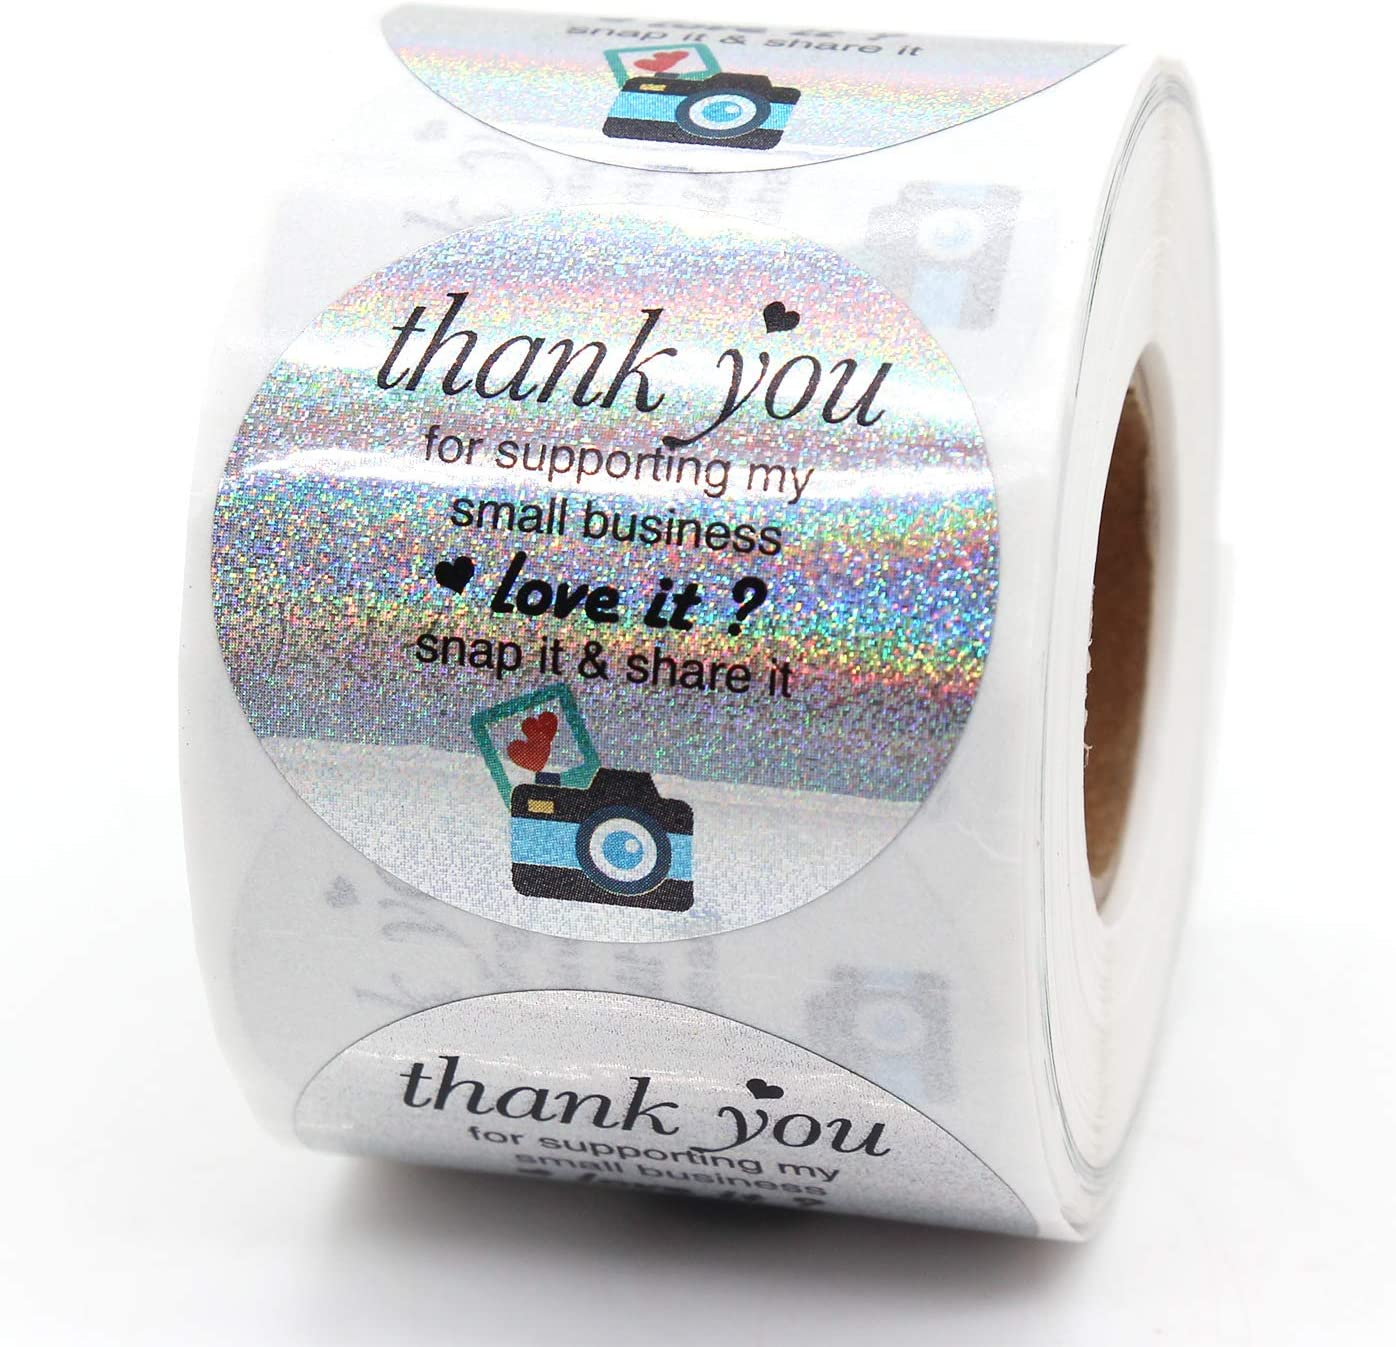 Muminglong1.5 Inch Thank You Camera Share It Stickers, Review Reminder Sticker, Small Shop Sticker, Small Business, 500PCS